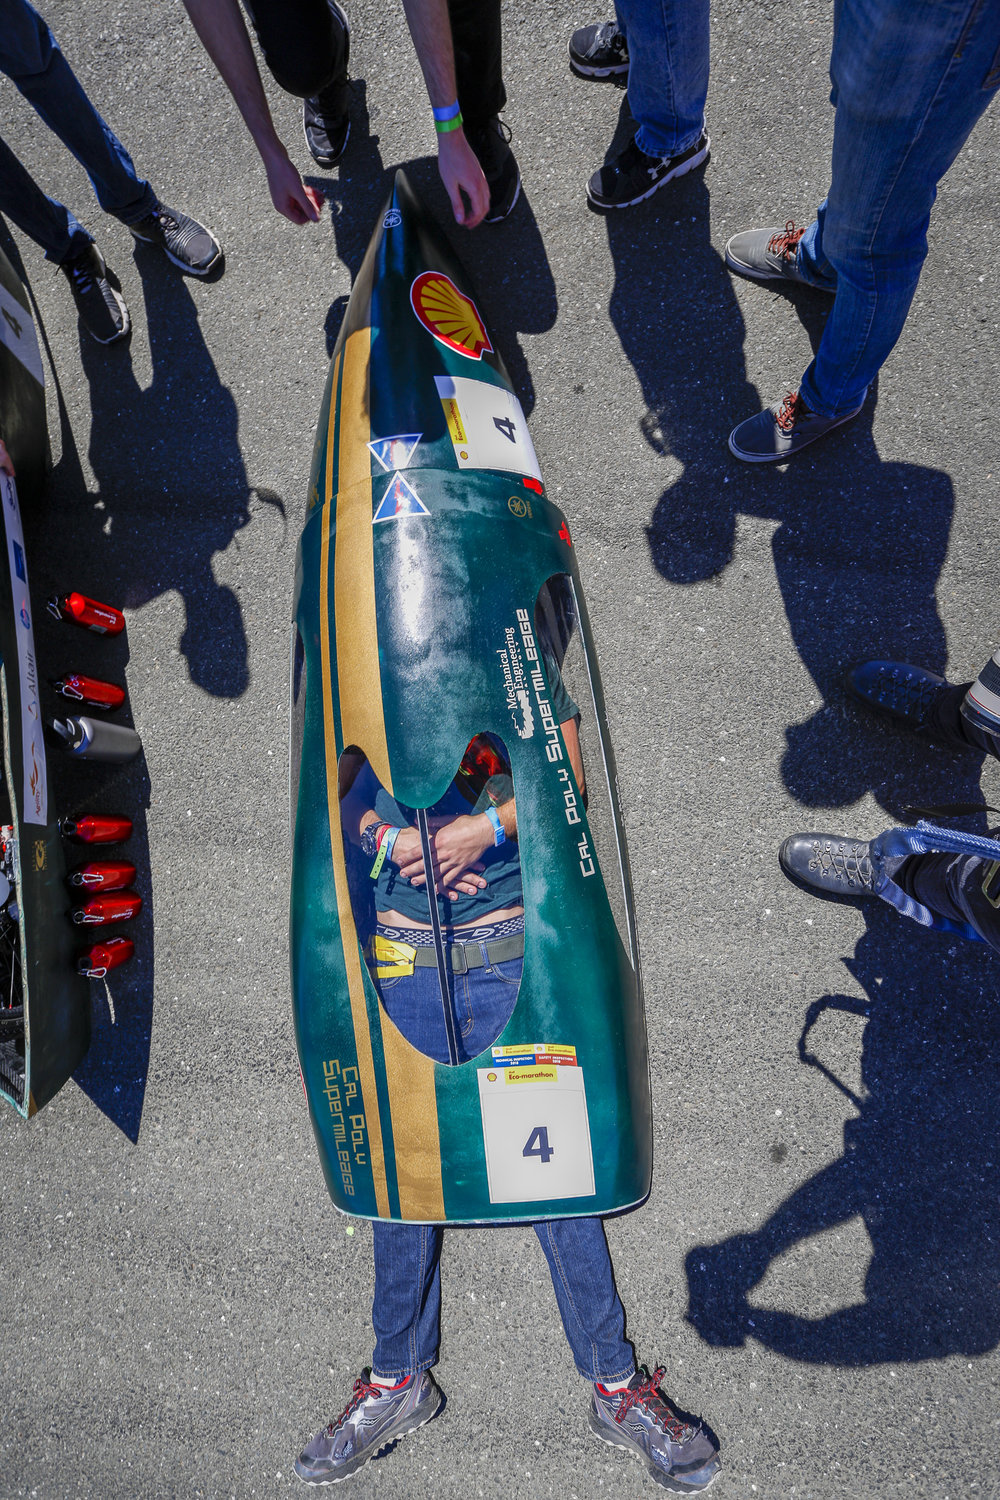 Team Cal Poly Supermileage with their vehicle the Donald Duck,  #4, from California Polytechnic State University, San Luis Obispo, CA, United States, competing under the Prototype - Gasoline category waits before a group portrait during day two of Shell Make the Future at Sonoma Raceway, Friday, April 20, 2018 in Sonoma, Calif.